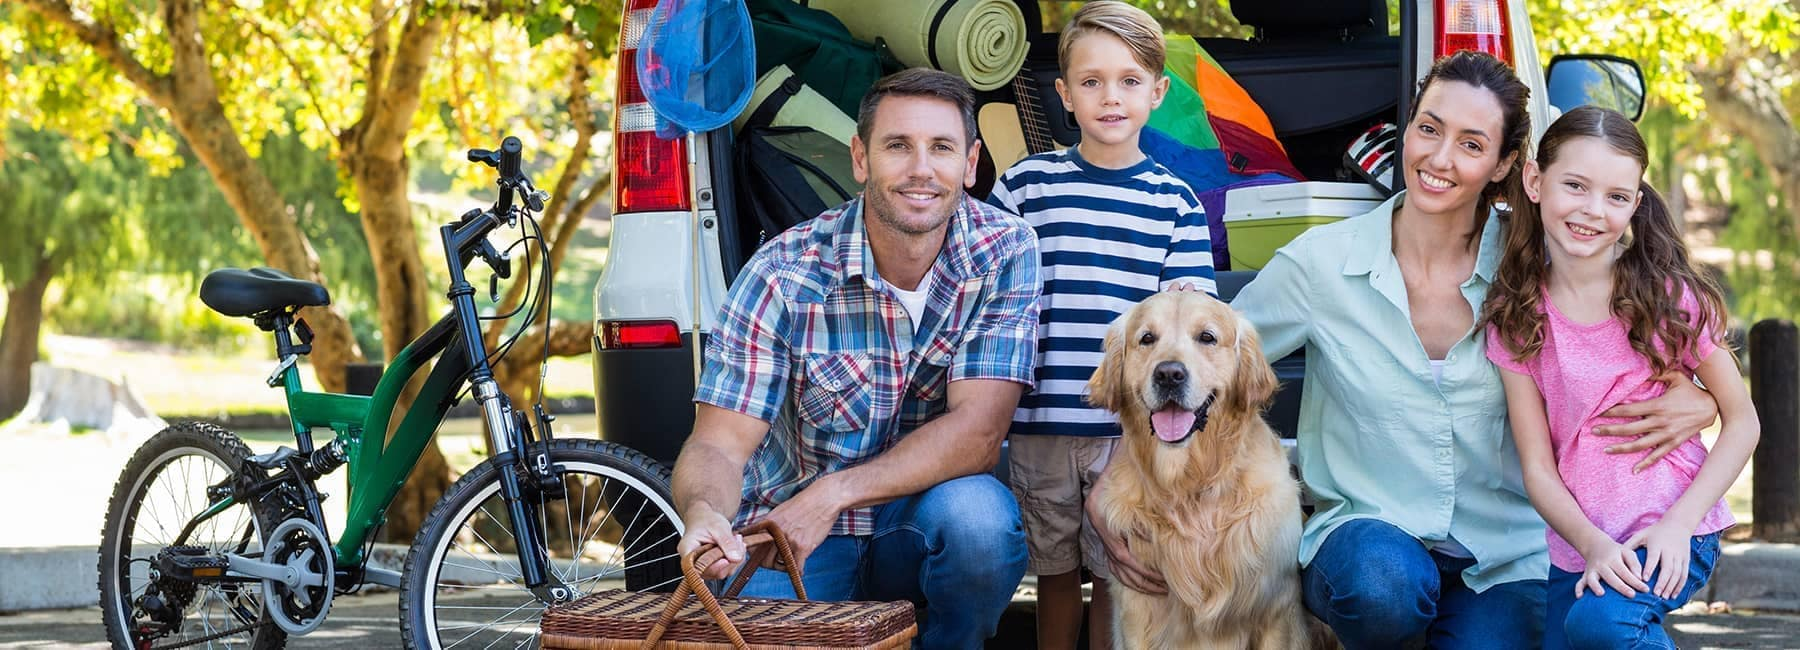 Smiling family crouching in front of their packed car